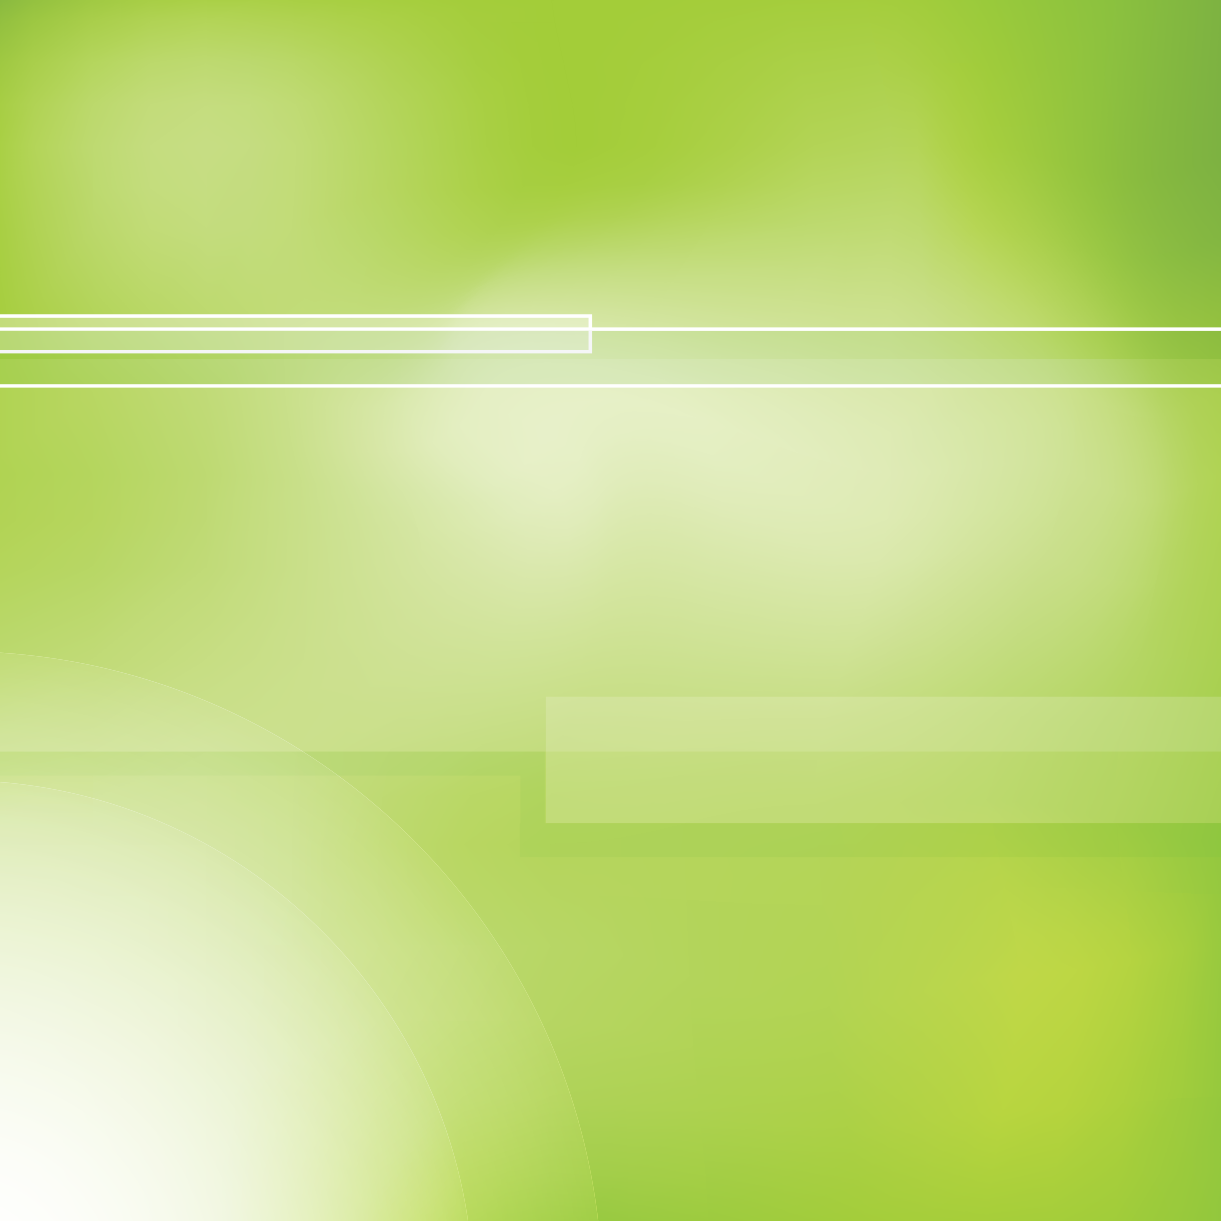 abstract green technology background vector illustration